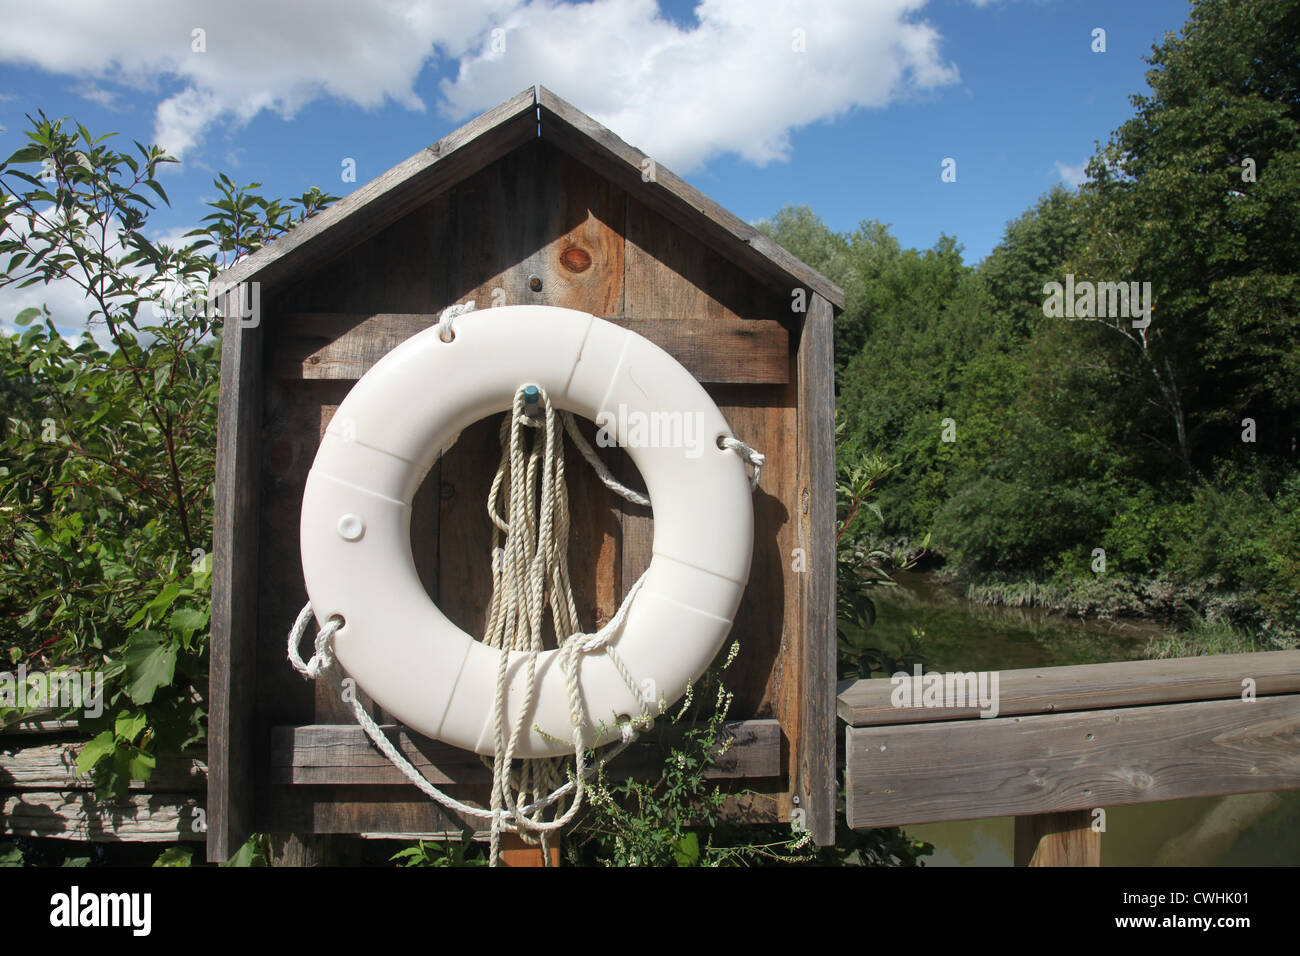 Life saver old style on a bridge over a small river - Stock Image